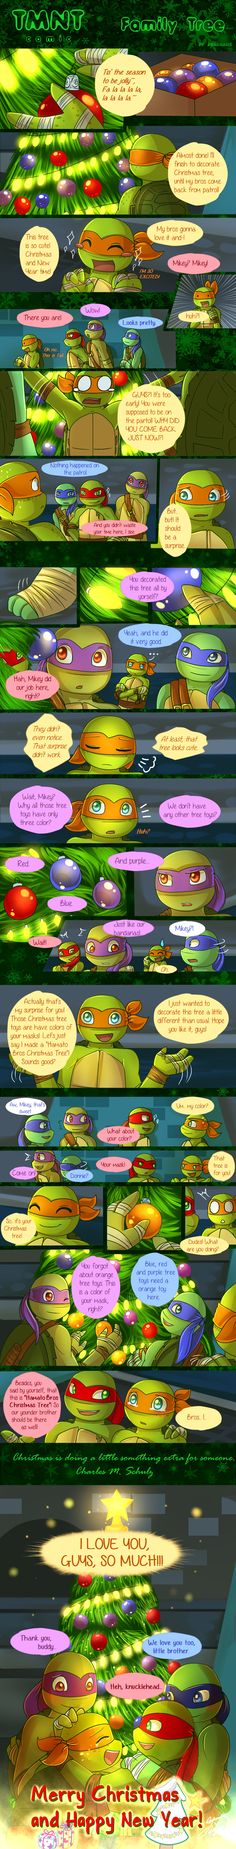 .: TMNT comic - Family Tree :. by AquaGame.deviantart.com on @DeviantArt